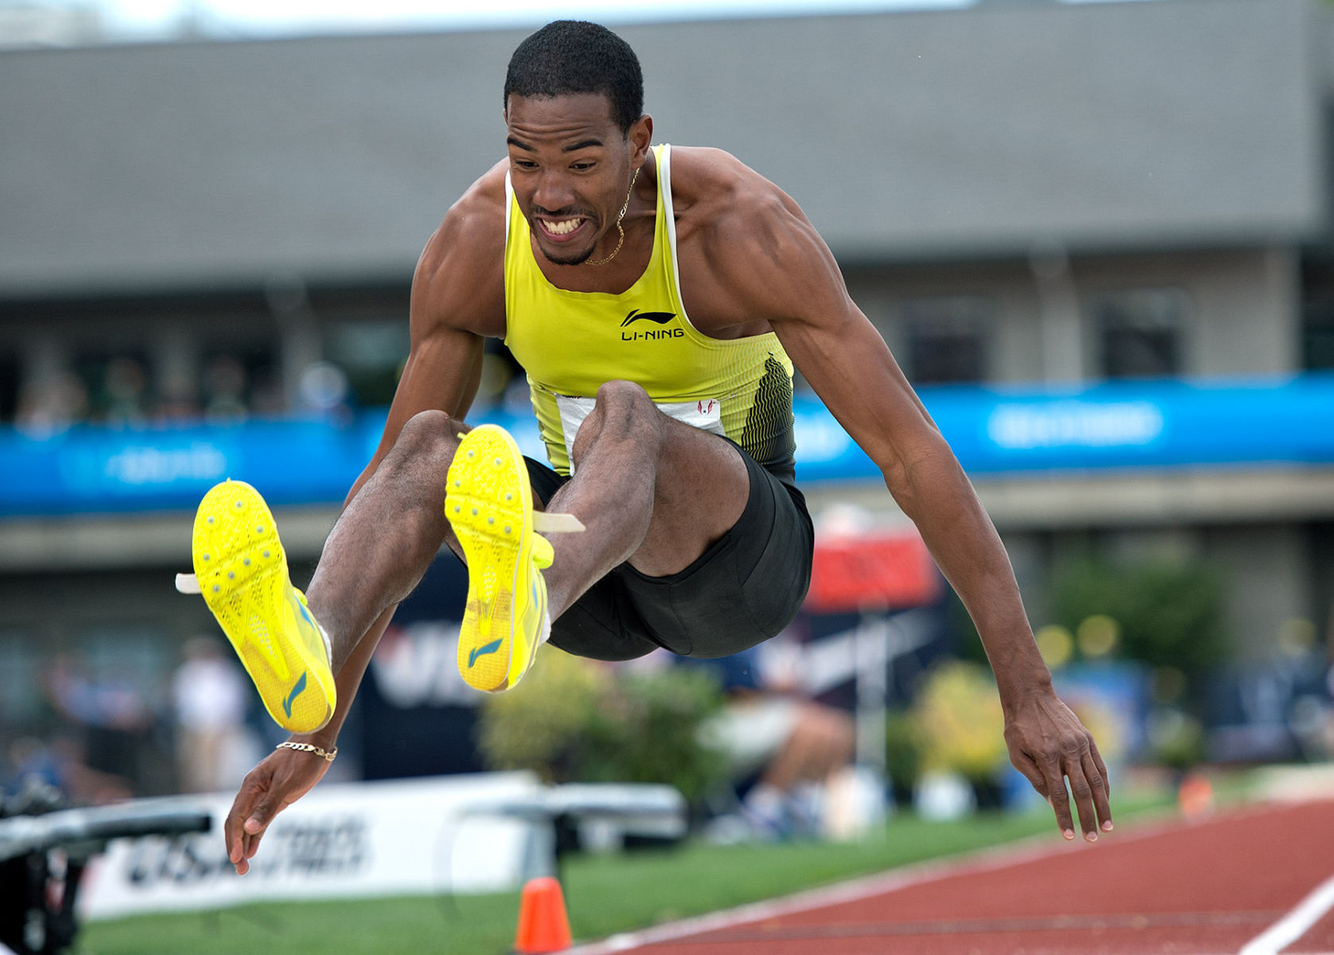 1ustrials_2012_charles_taylor_lj_track_and_field_image_jeff_cohen_photo_lb.jpg